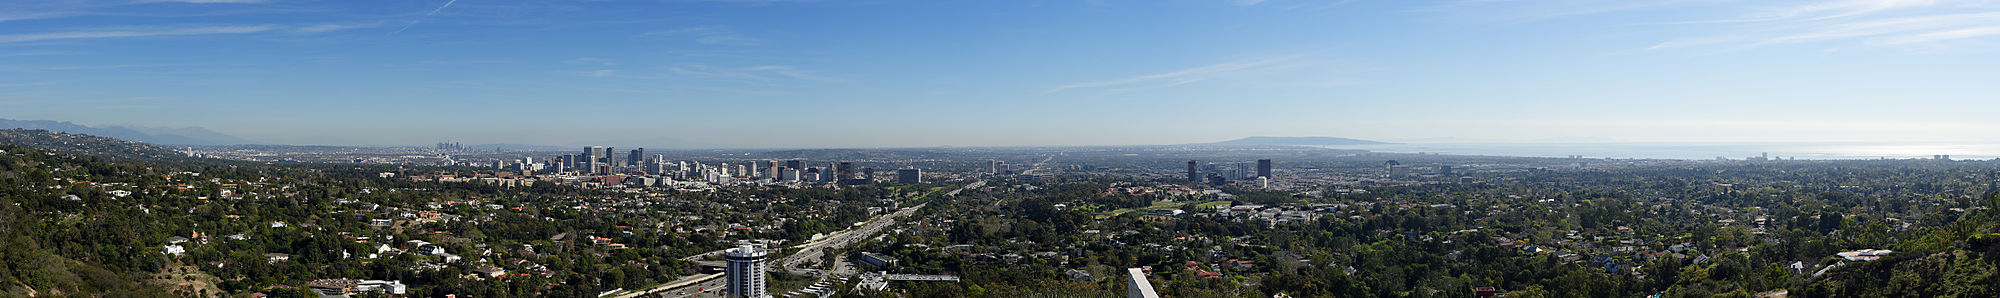 The view from the Getty Center, south of the Sepulveda Pass, looking east, south, and west. The San Diego Freeway can be seen at the center